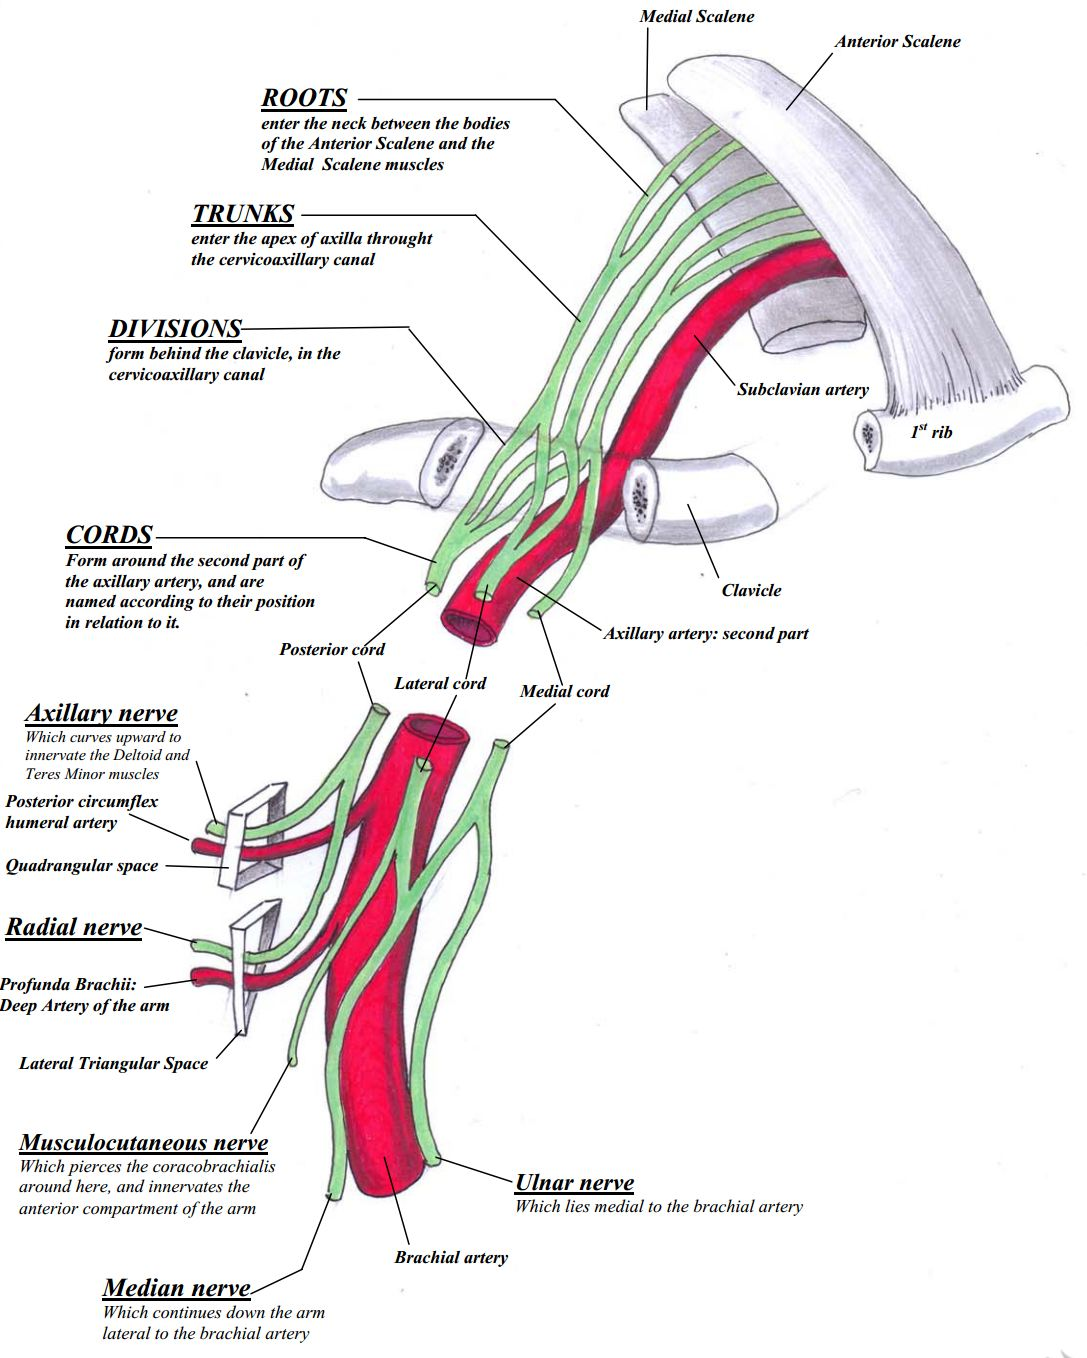 Brachial Plexus Anatomical Course And Lesions Deranged Physiology